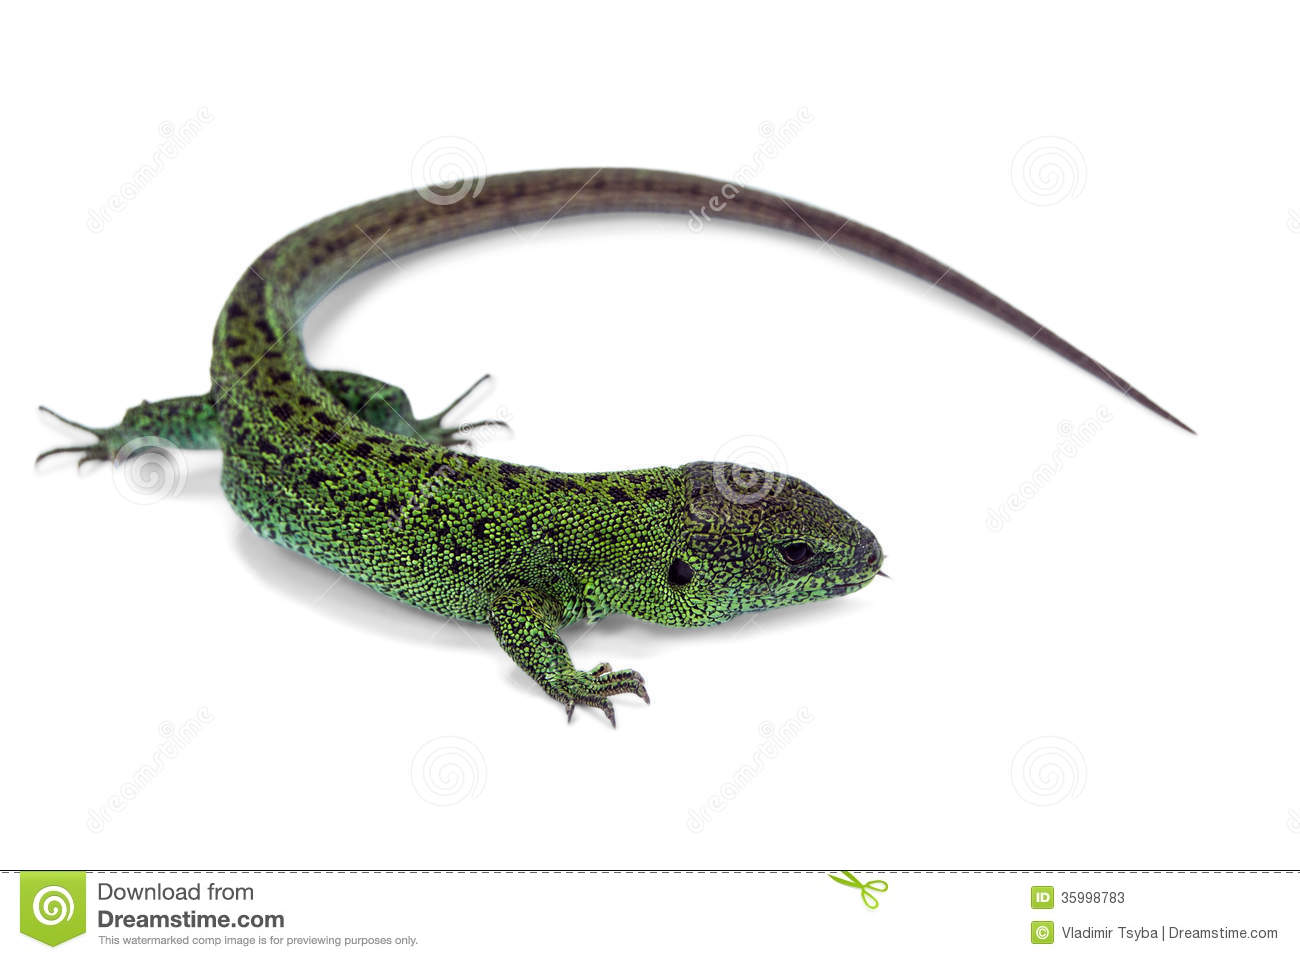 Big green lizard isolated on white background.